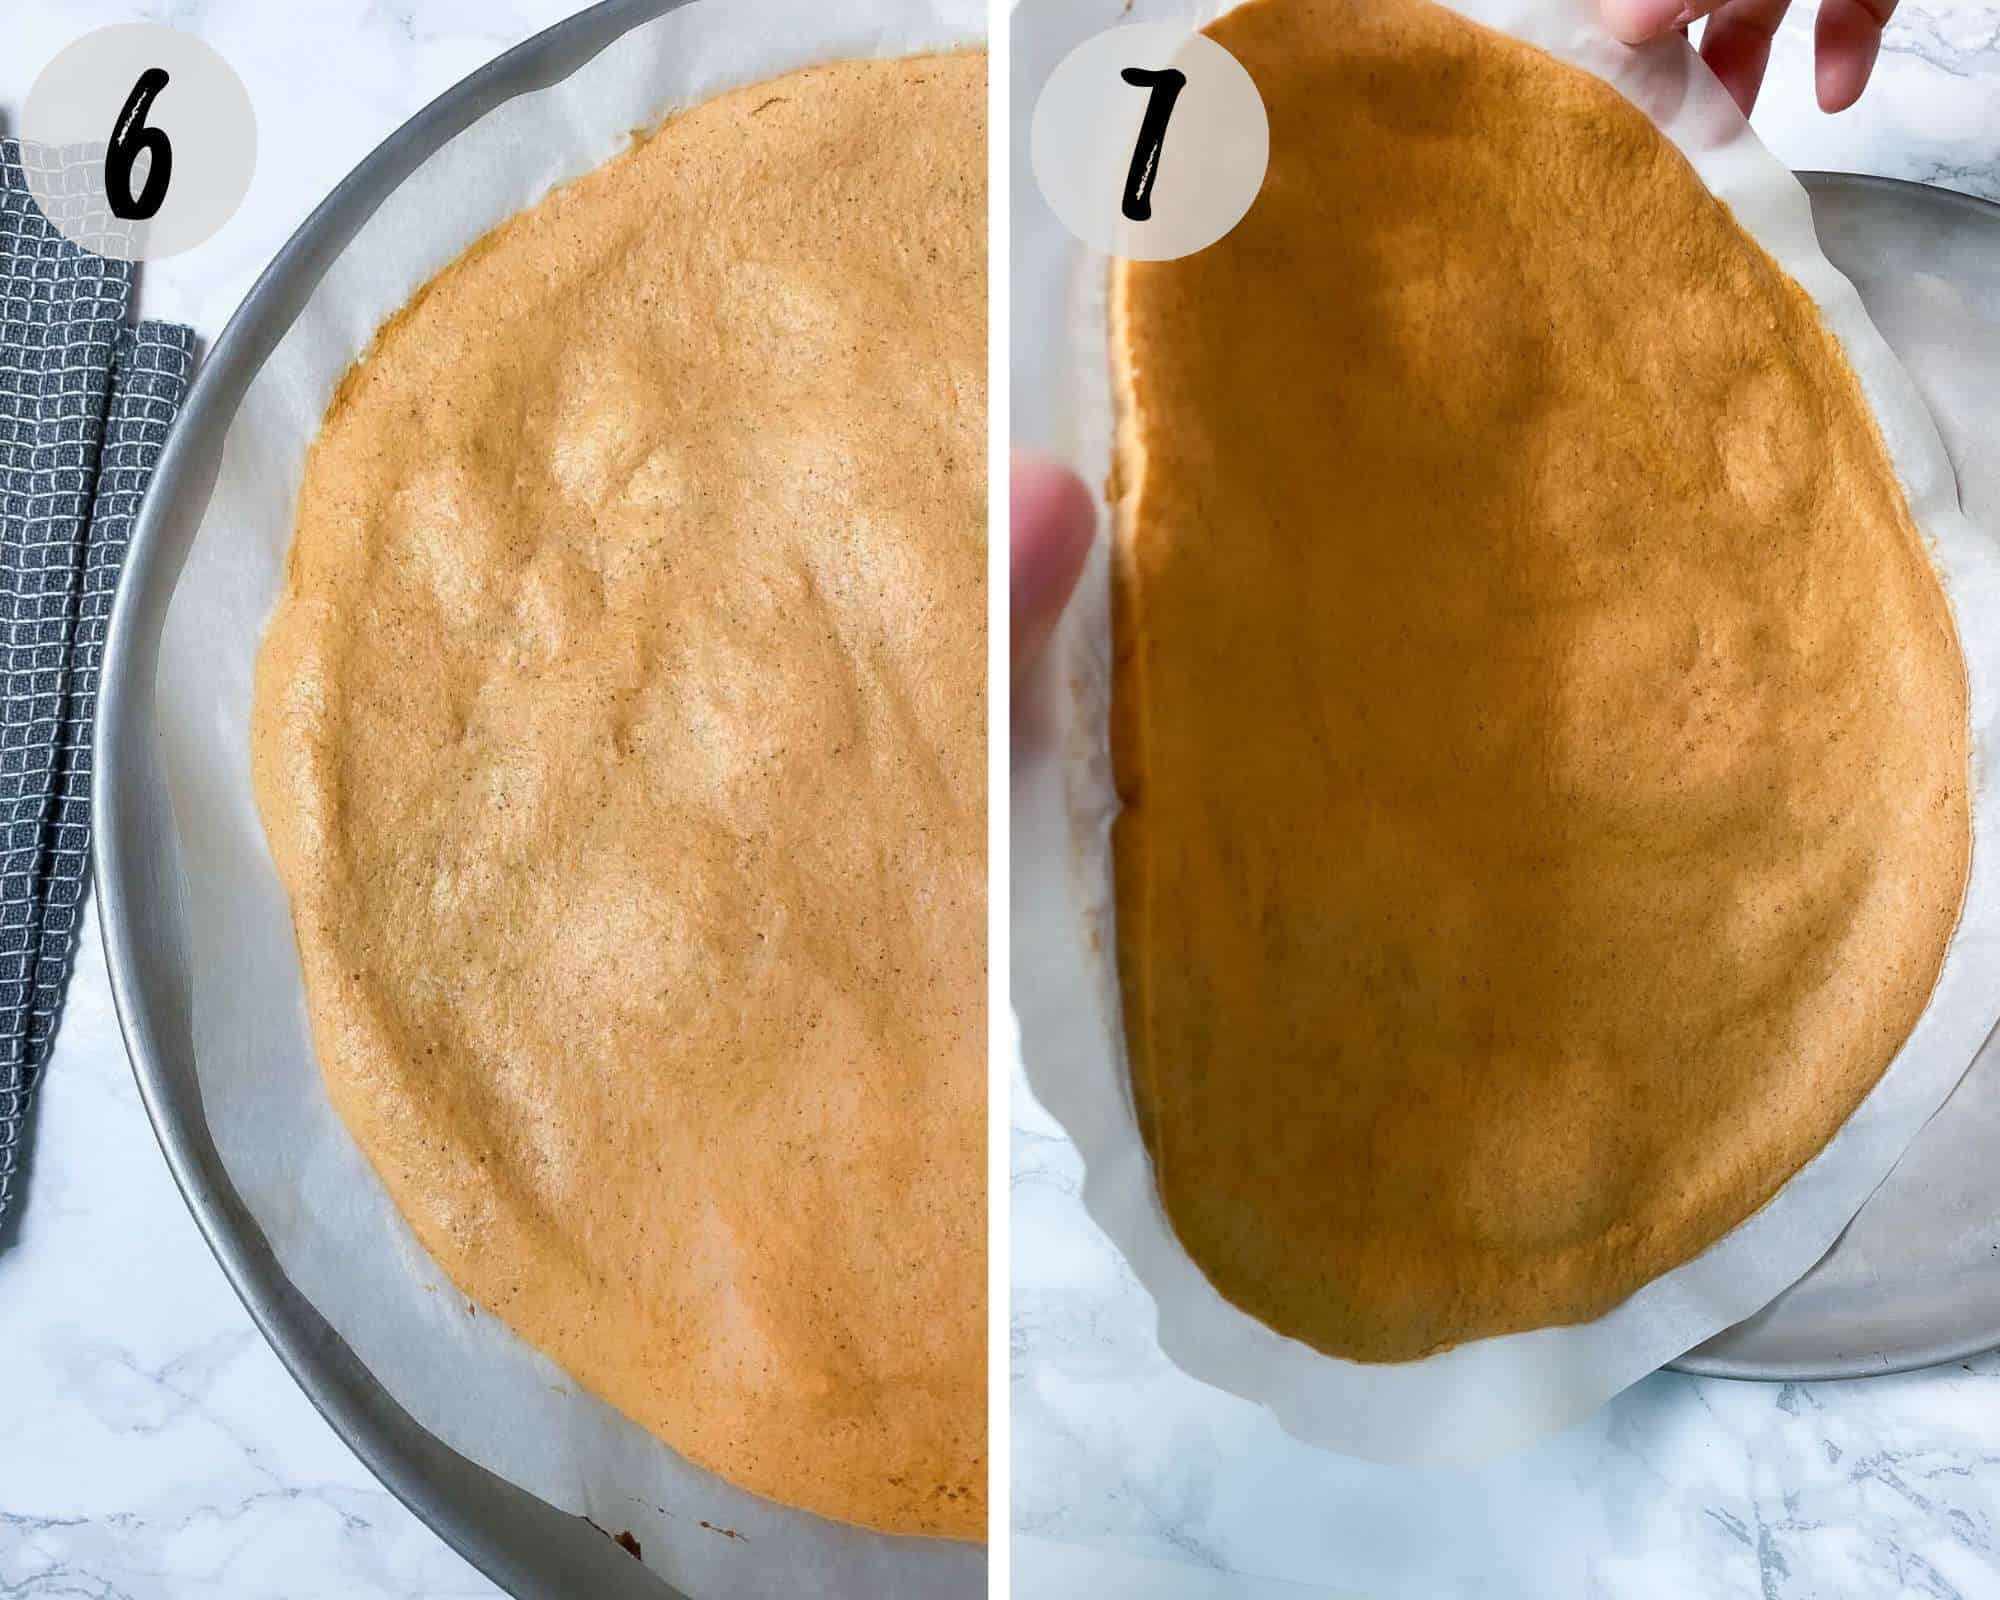 flipping lentil pizza crust over to bake the other side